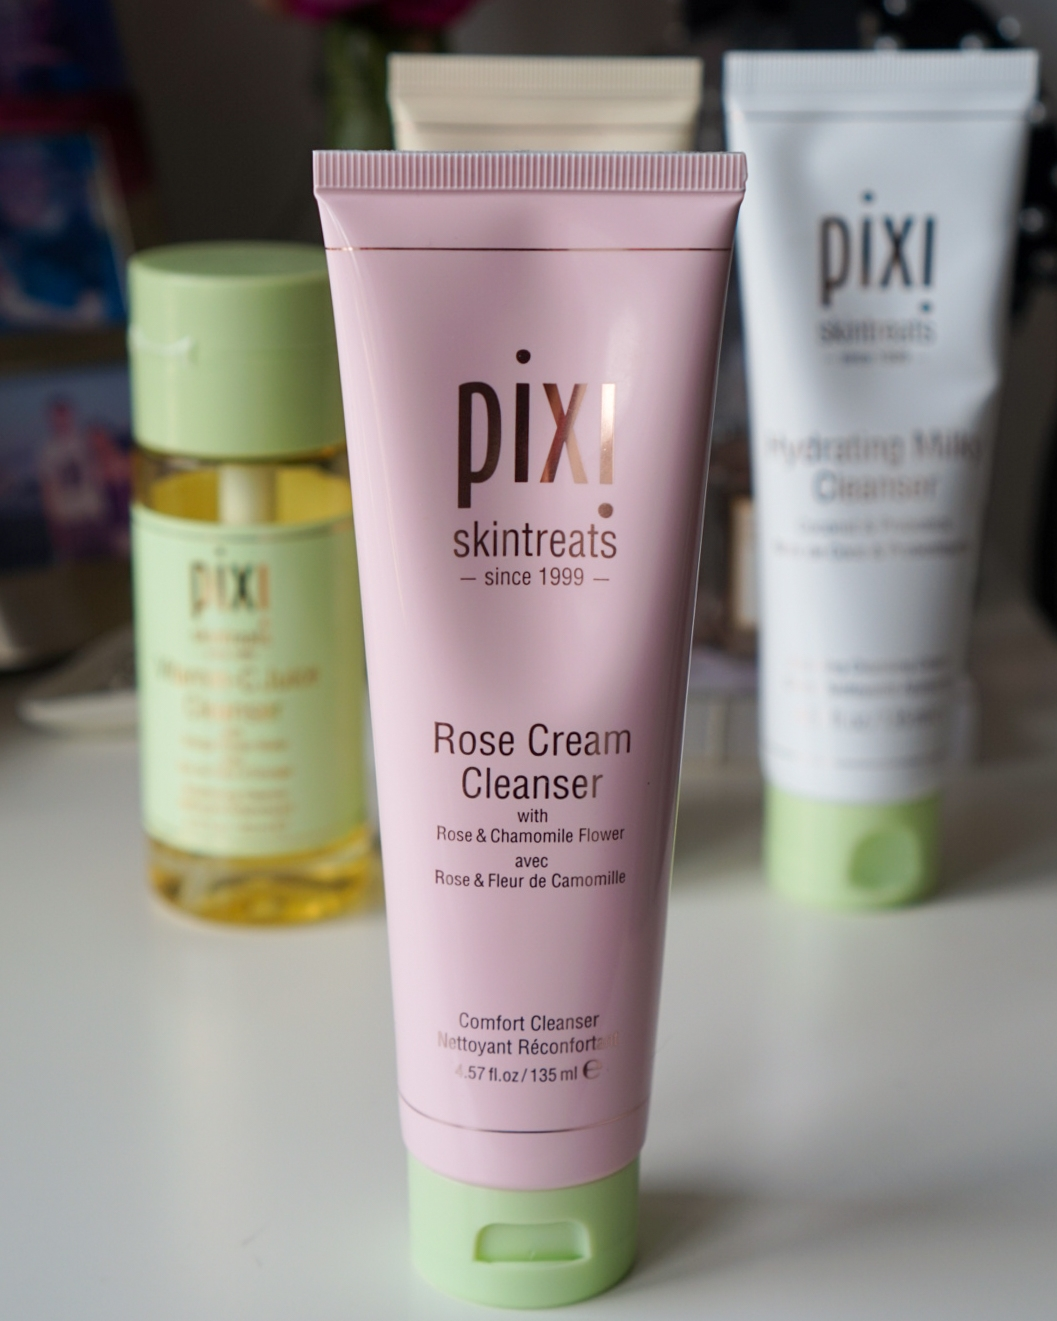 Pixi Beauty Rose Cream Cleanser recommended cleansers for dry and dull skin